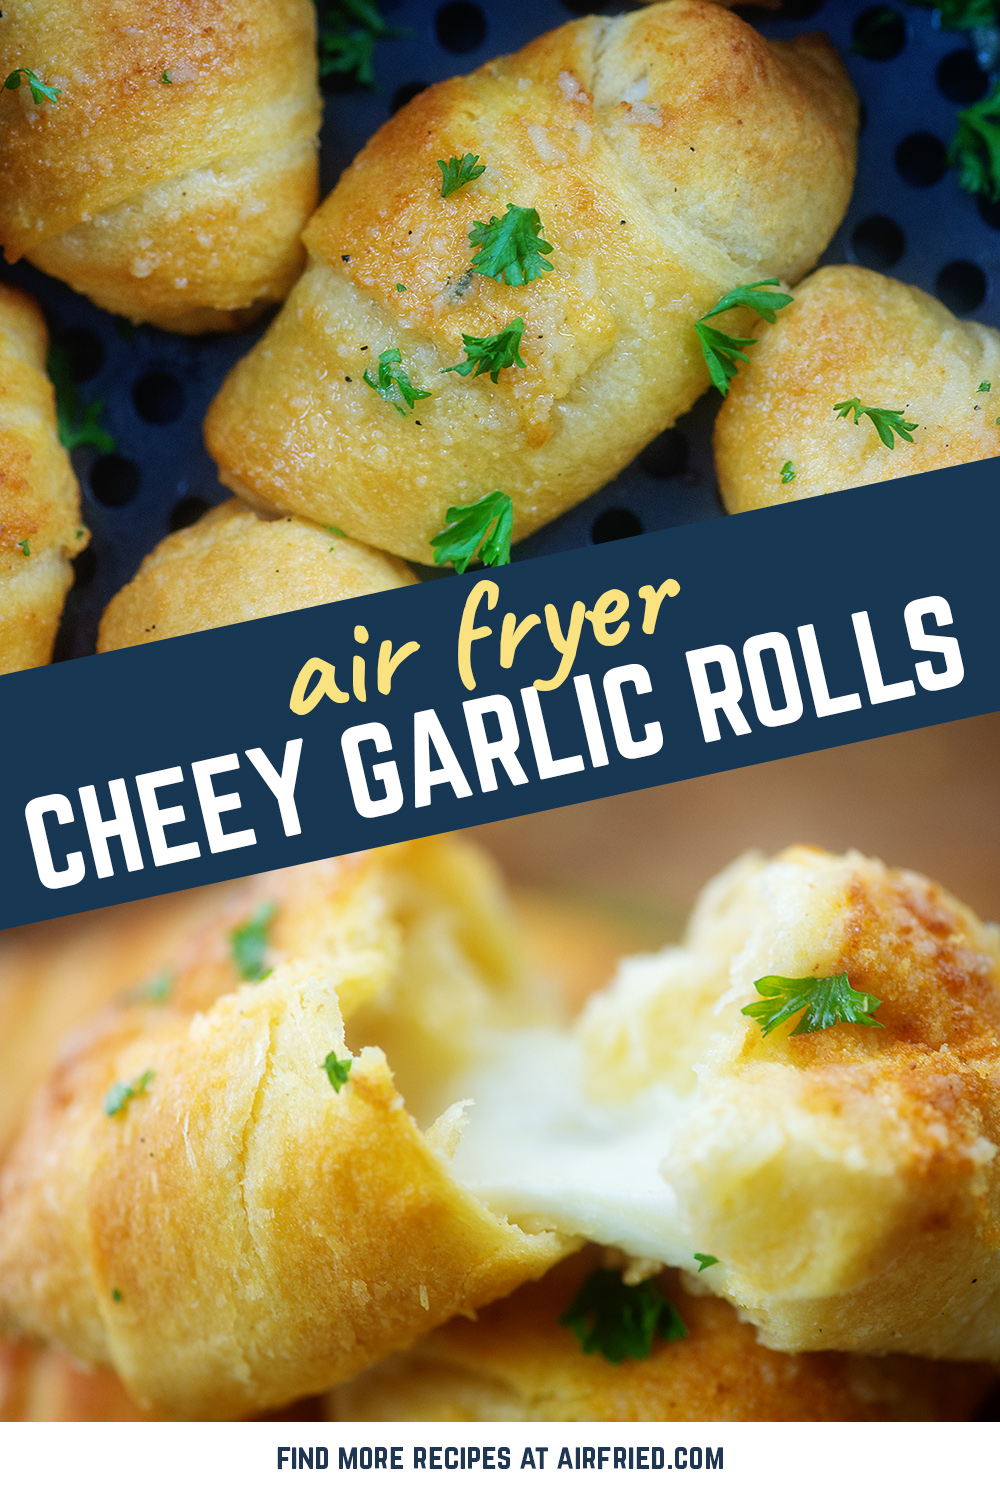 Easy, cheesy, and made in the air fryer! We're obsessed with these cheesy garlic crescent rolls.